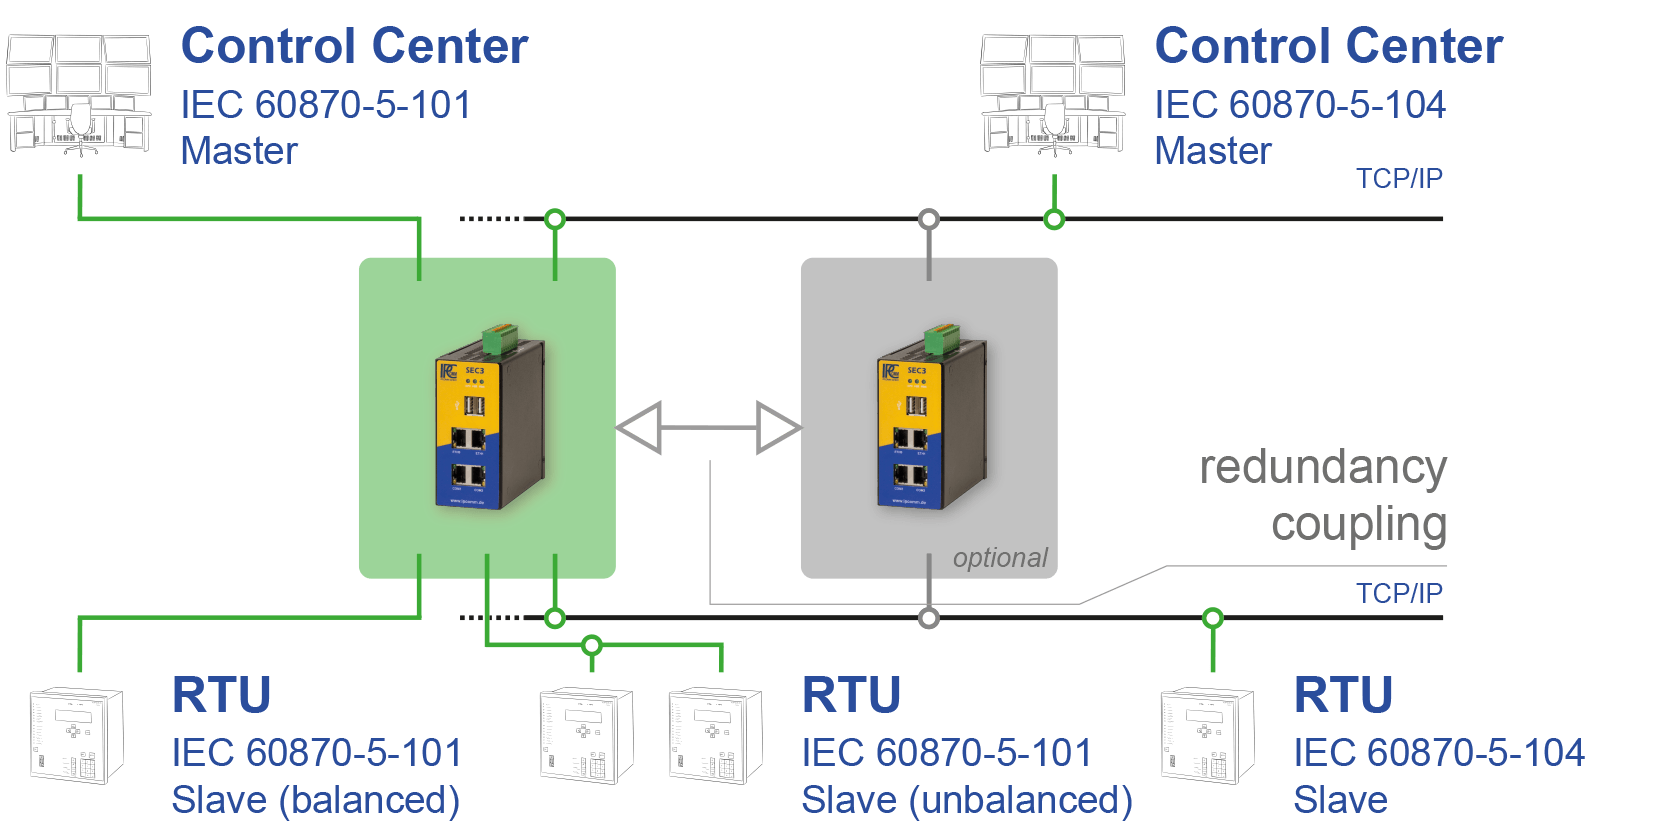 IPCOMM, ipRoute: IEC 60870-5-101/IEC 60870-5-104 Router